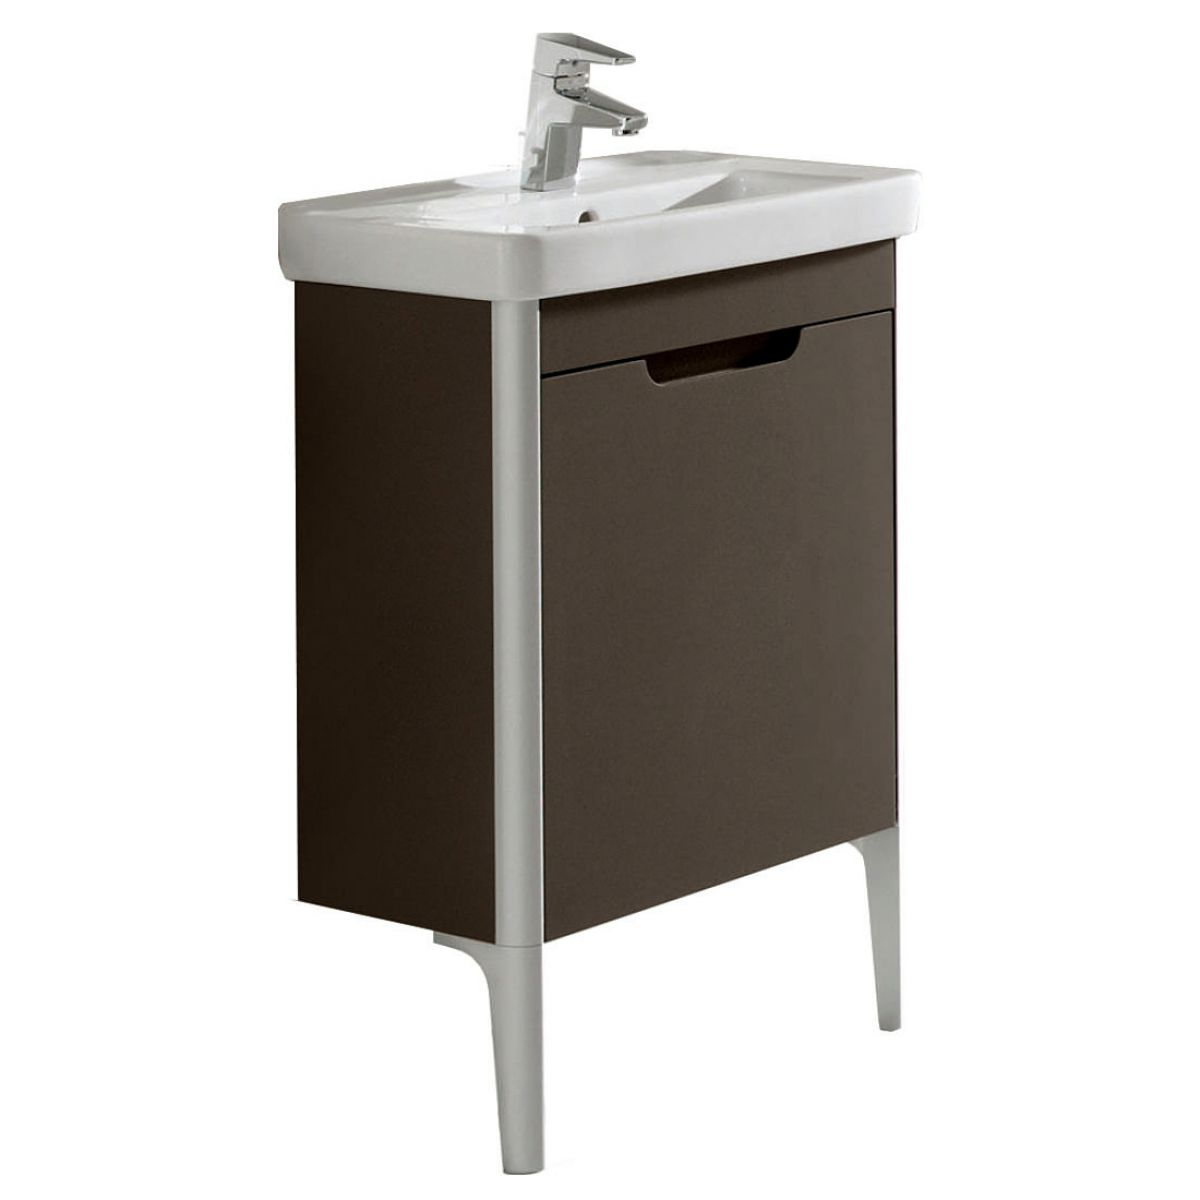 Roca Bathroom Accessories Roca Dama N 1 Door Compact Unit With Basin Uk Bathrooms